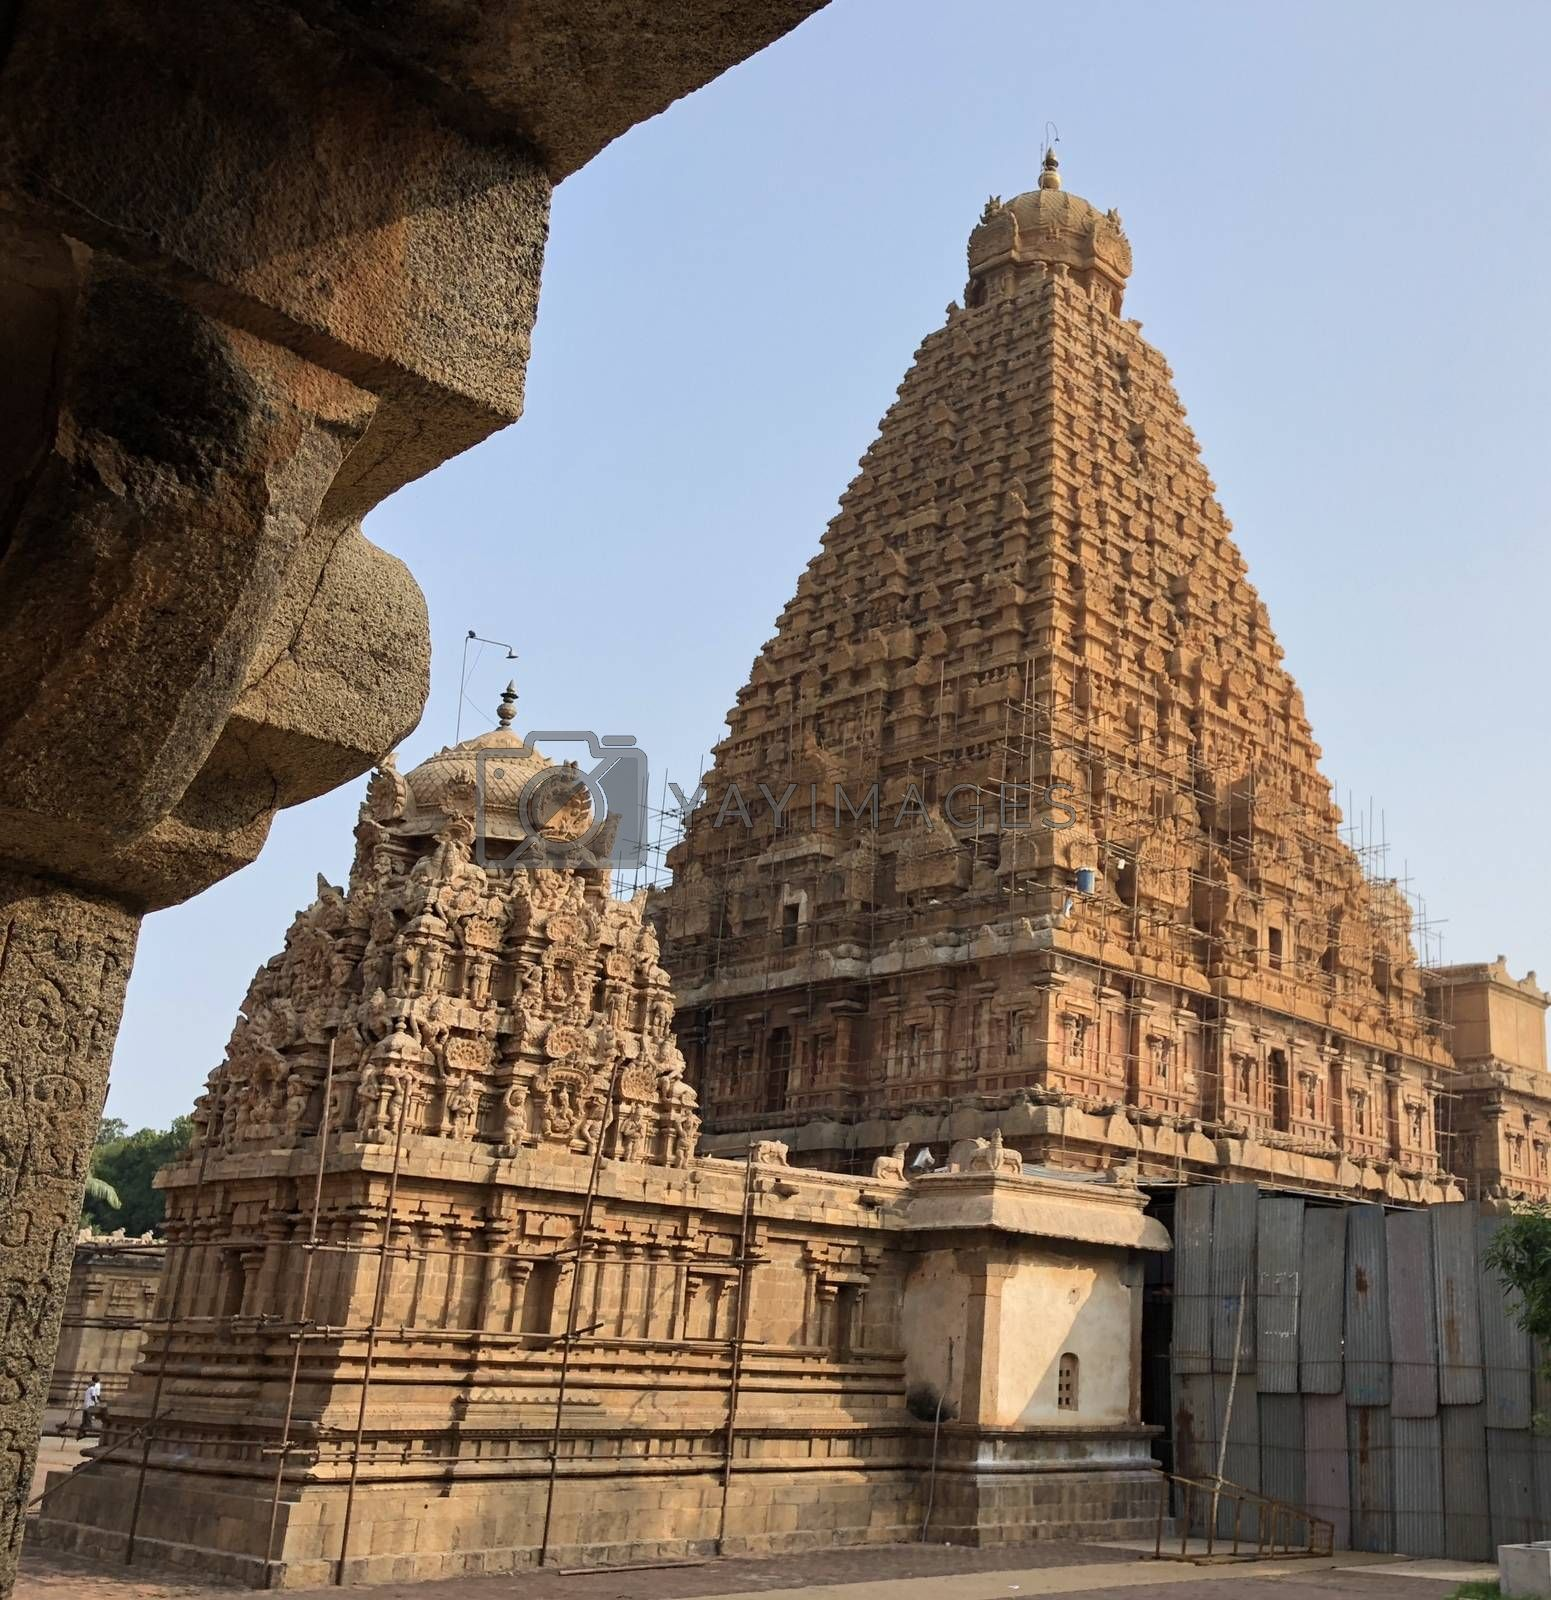 Brihadeeswarar temple in Thanjavur, Tamil nadu, India by Prabhakarans12